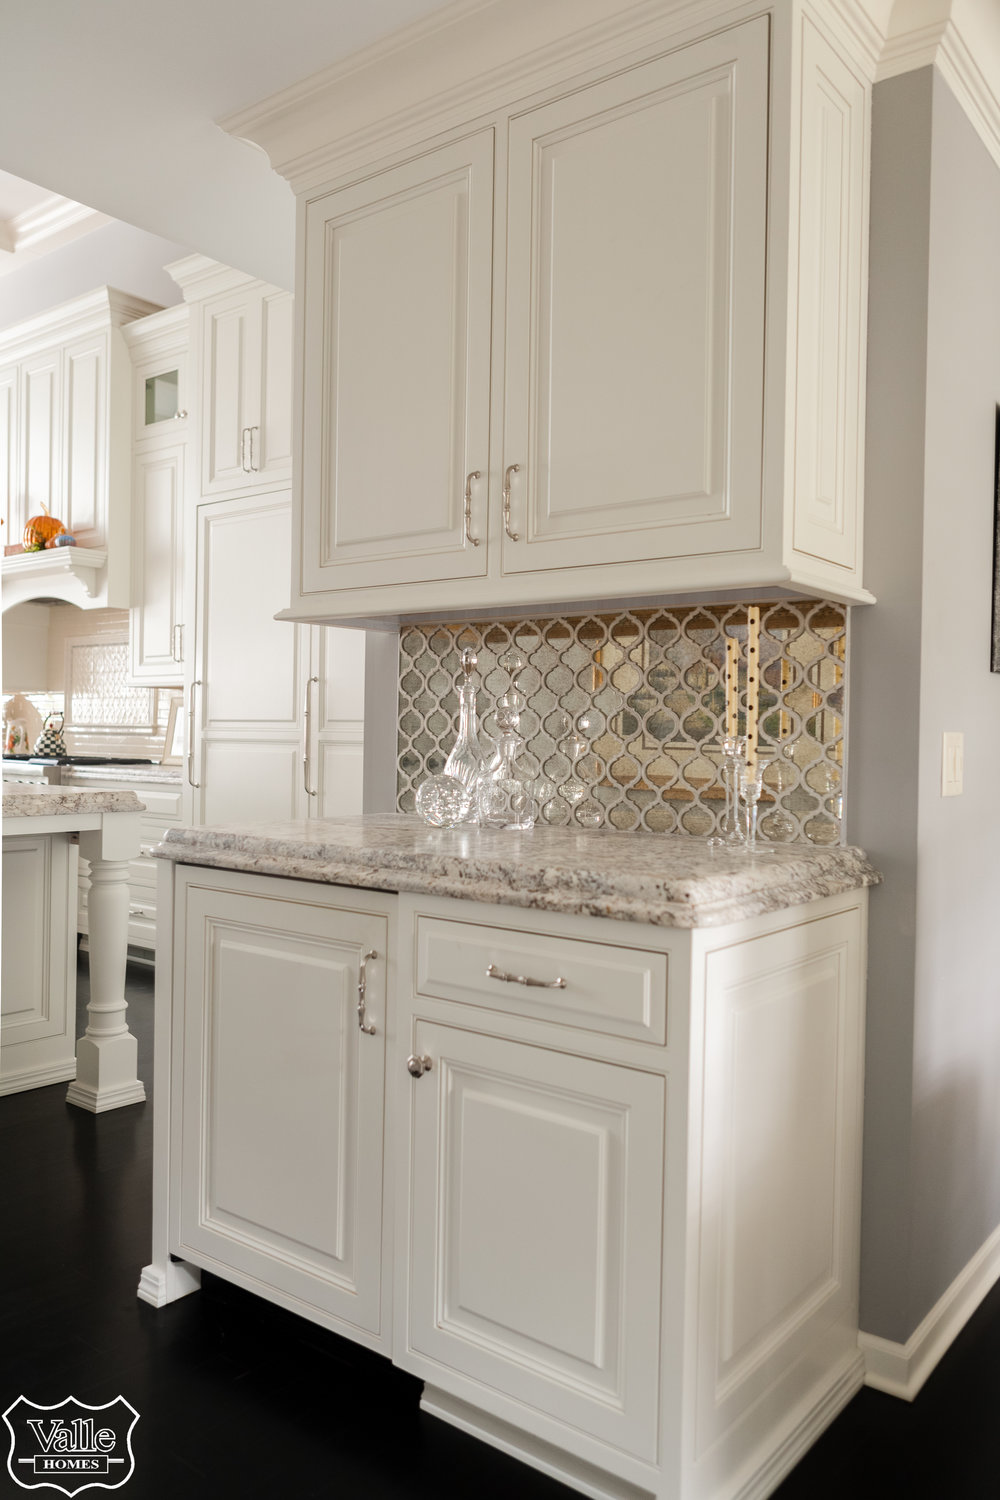 Toledo-Home-Remodel_Valle-Homes_Project-04_008.jpg